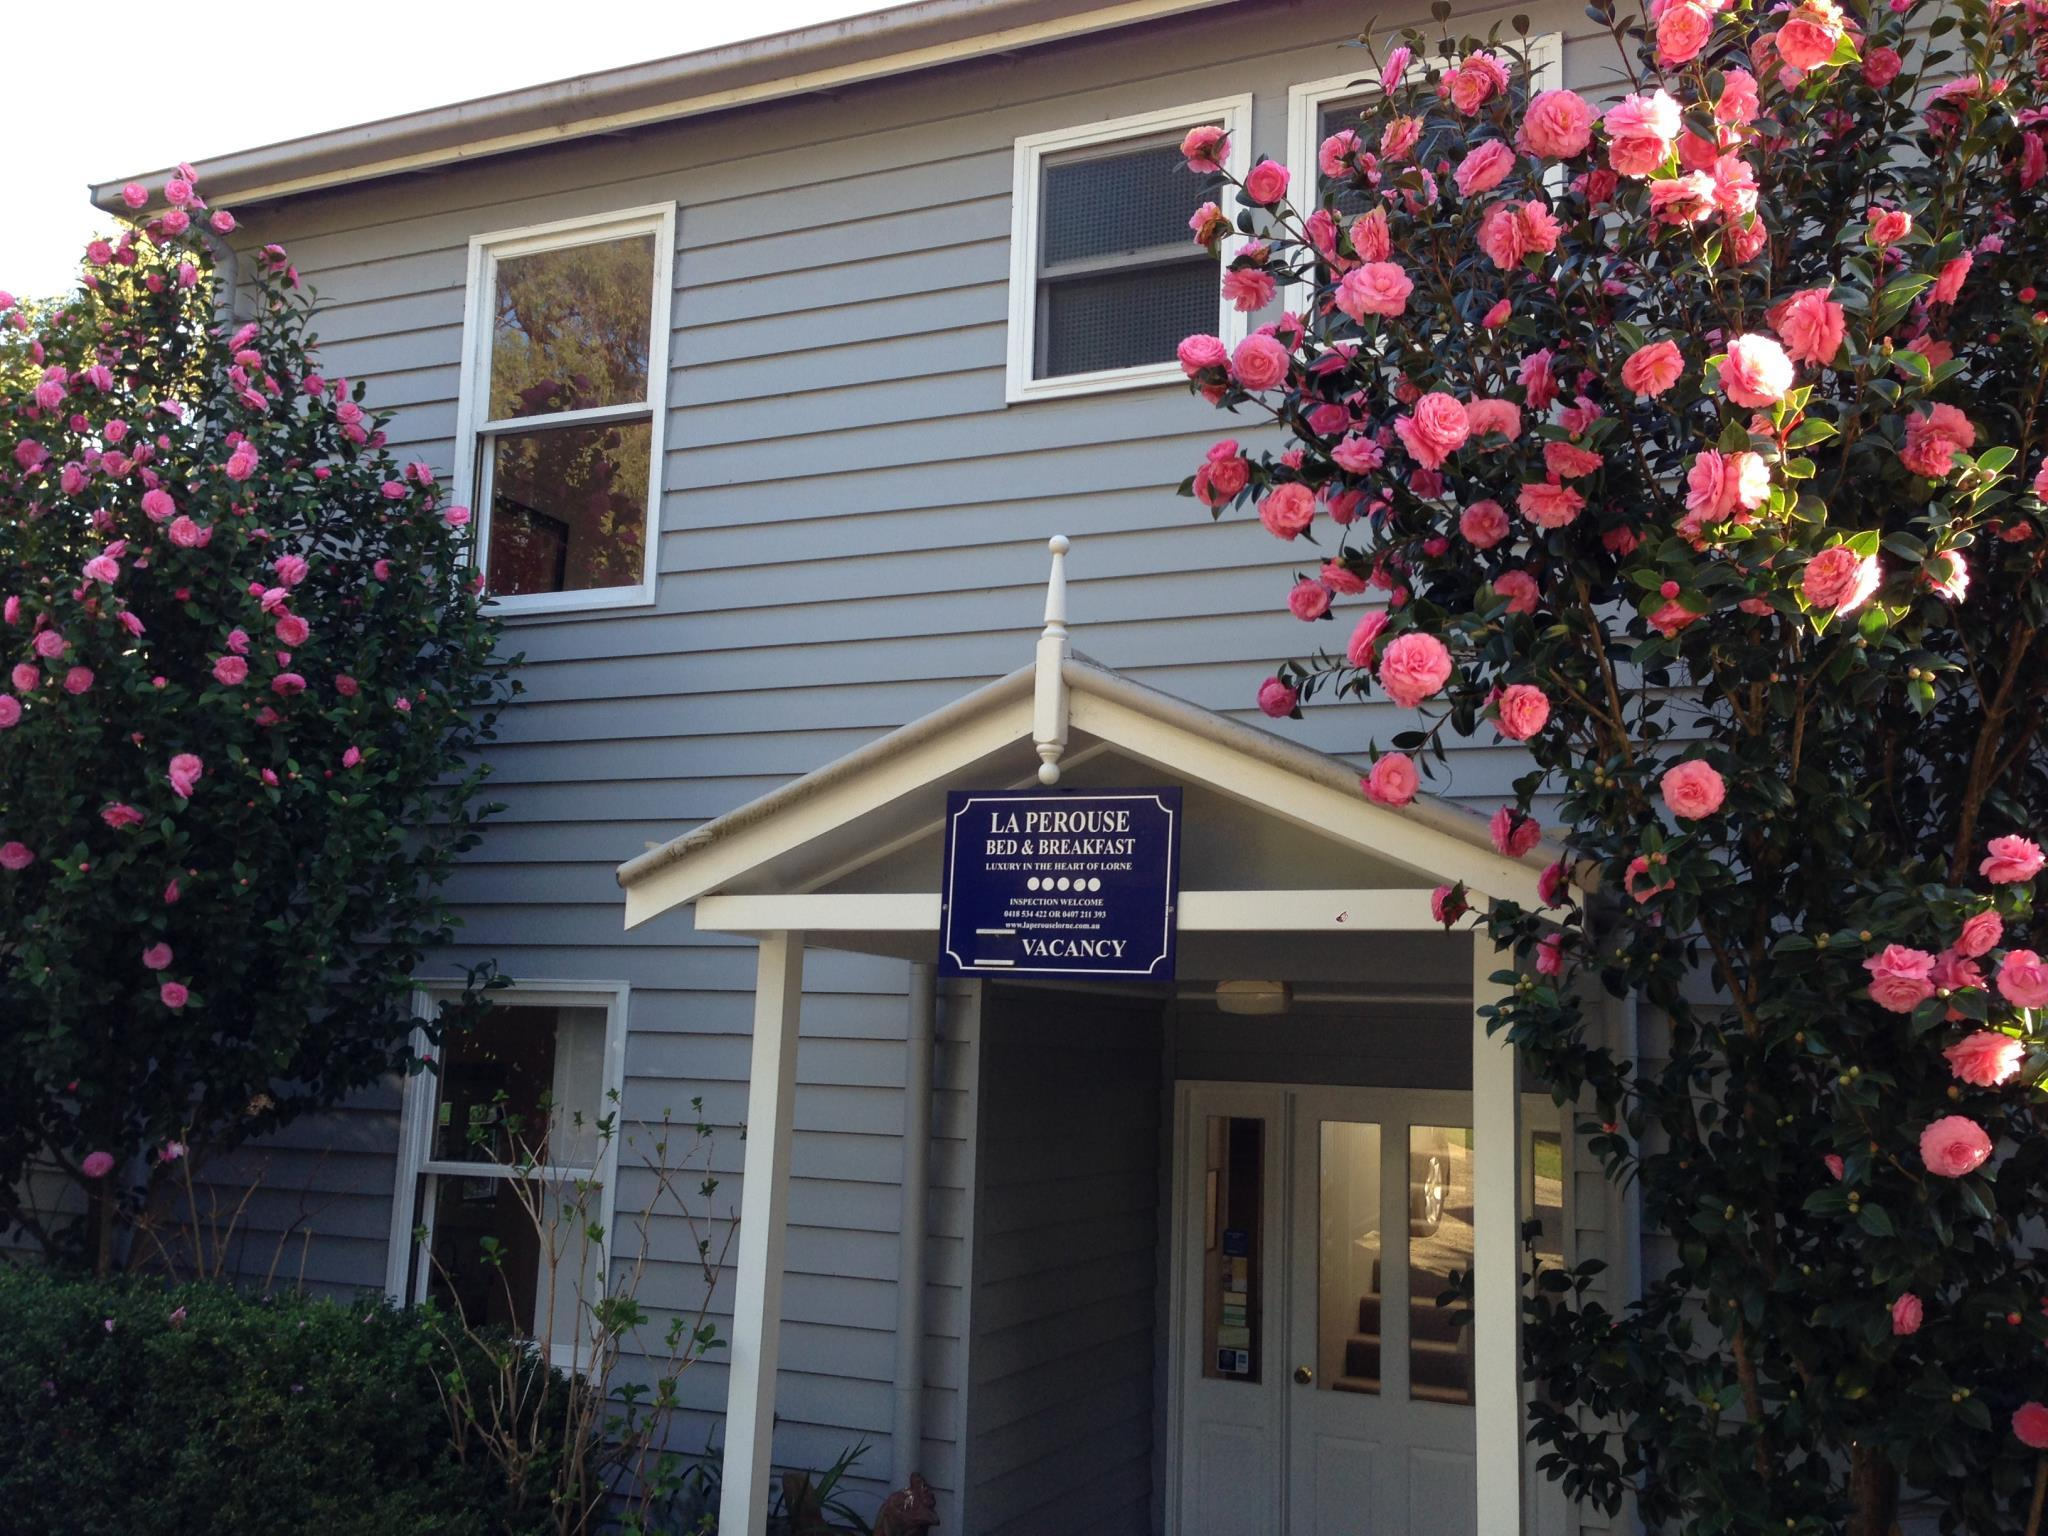 La Perouse Bed And Breakfast